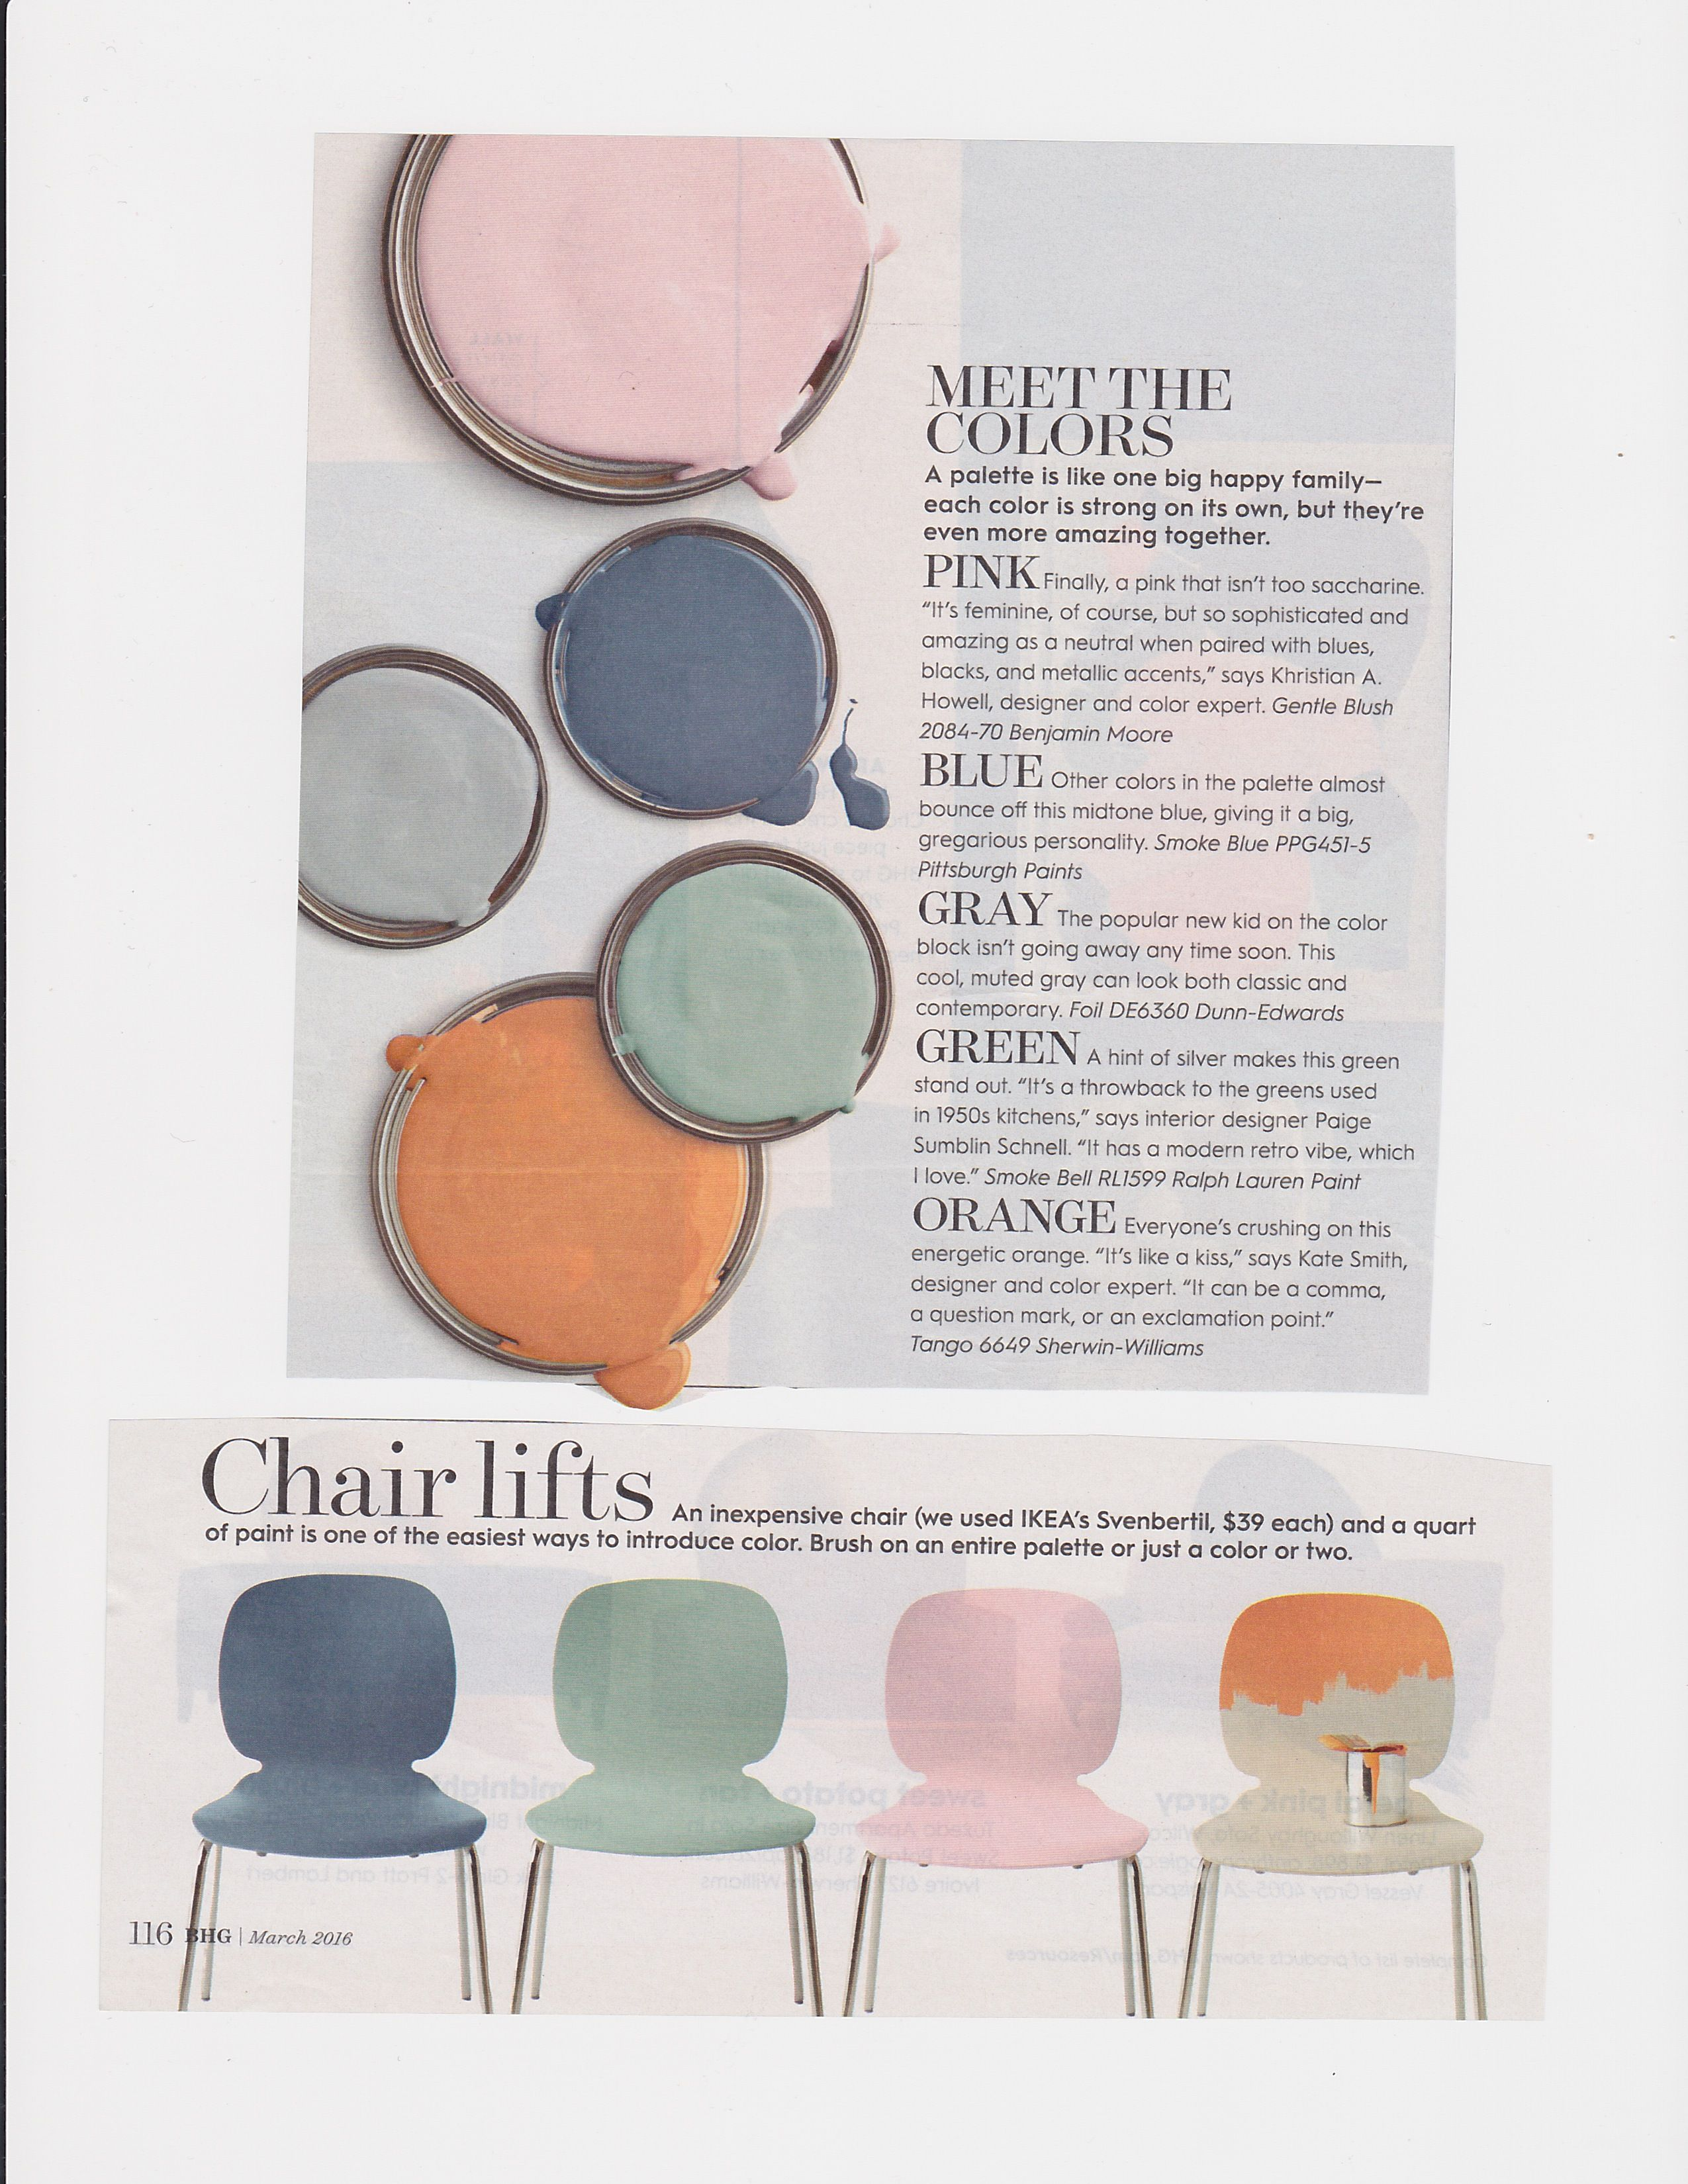 Bhg March 2016  Ikea Svenbertil Chairs Painted